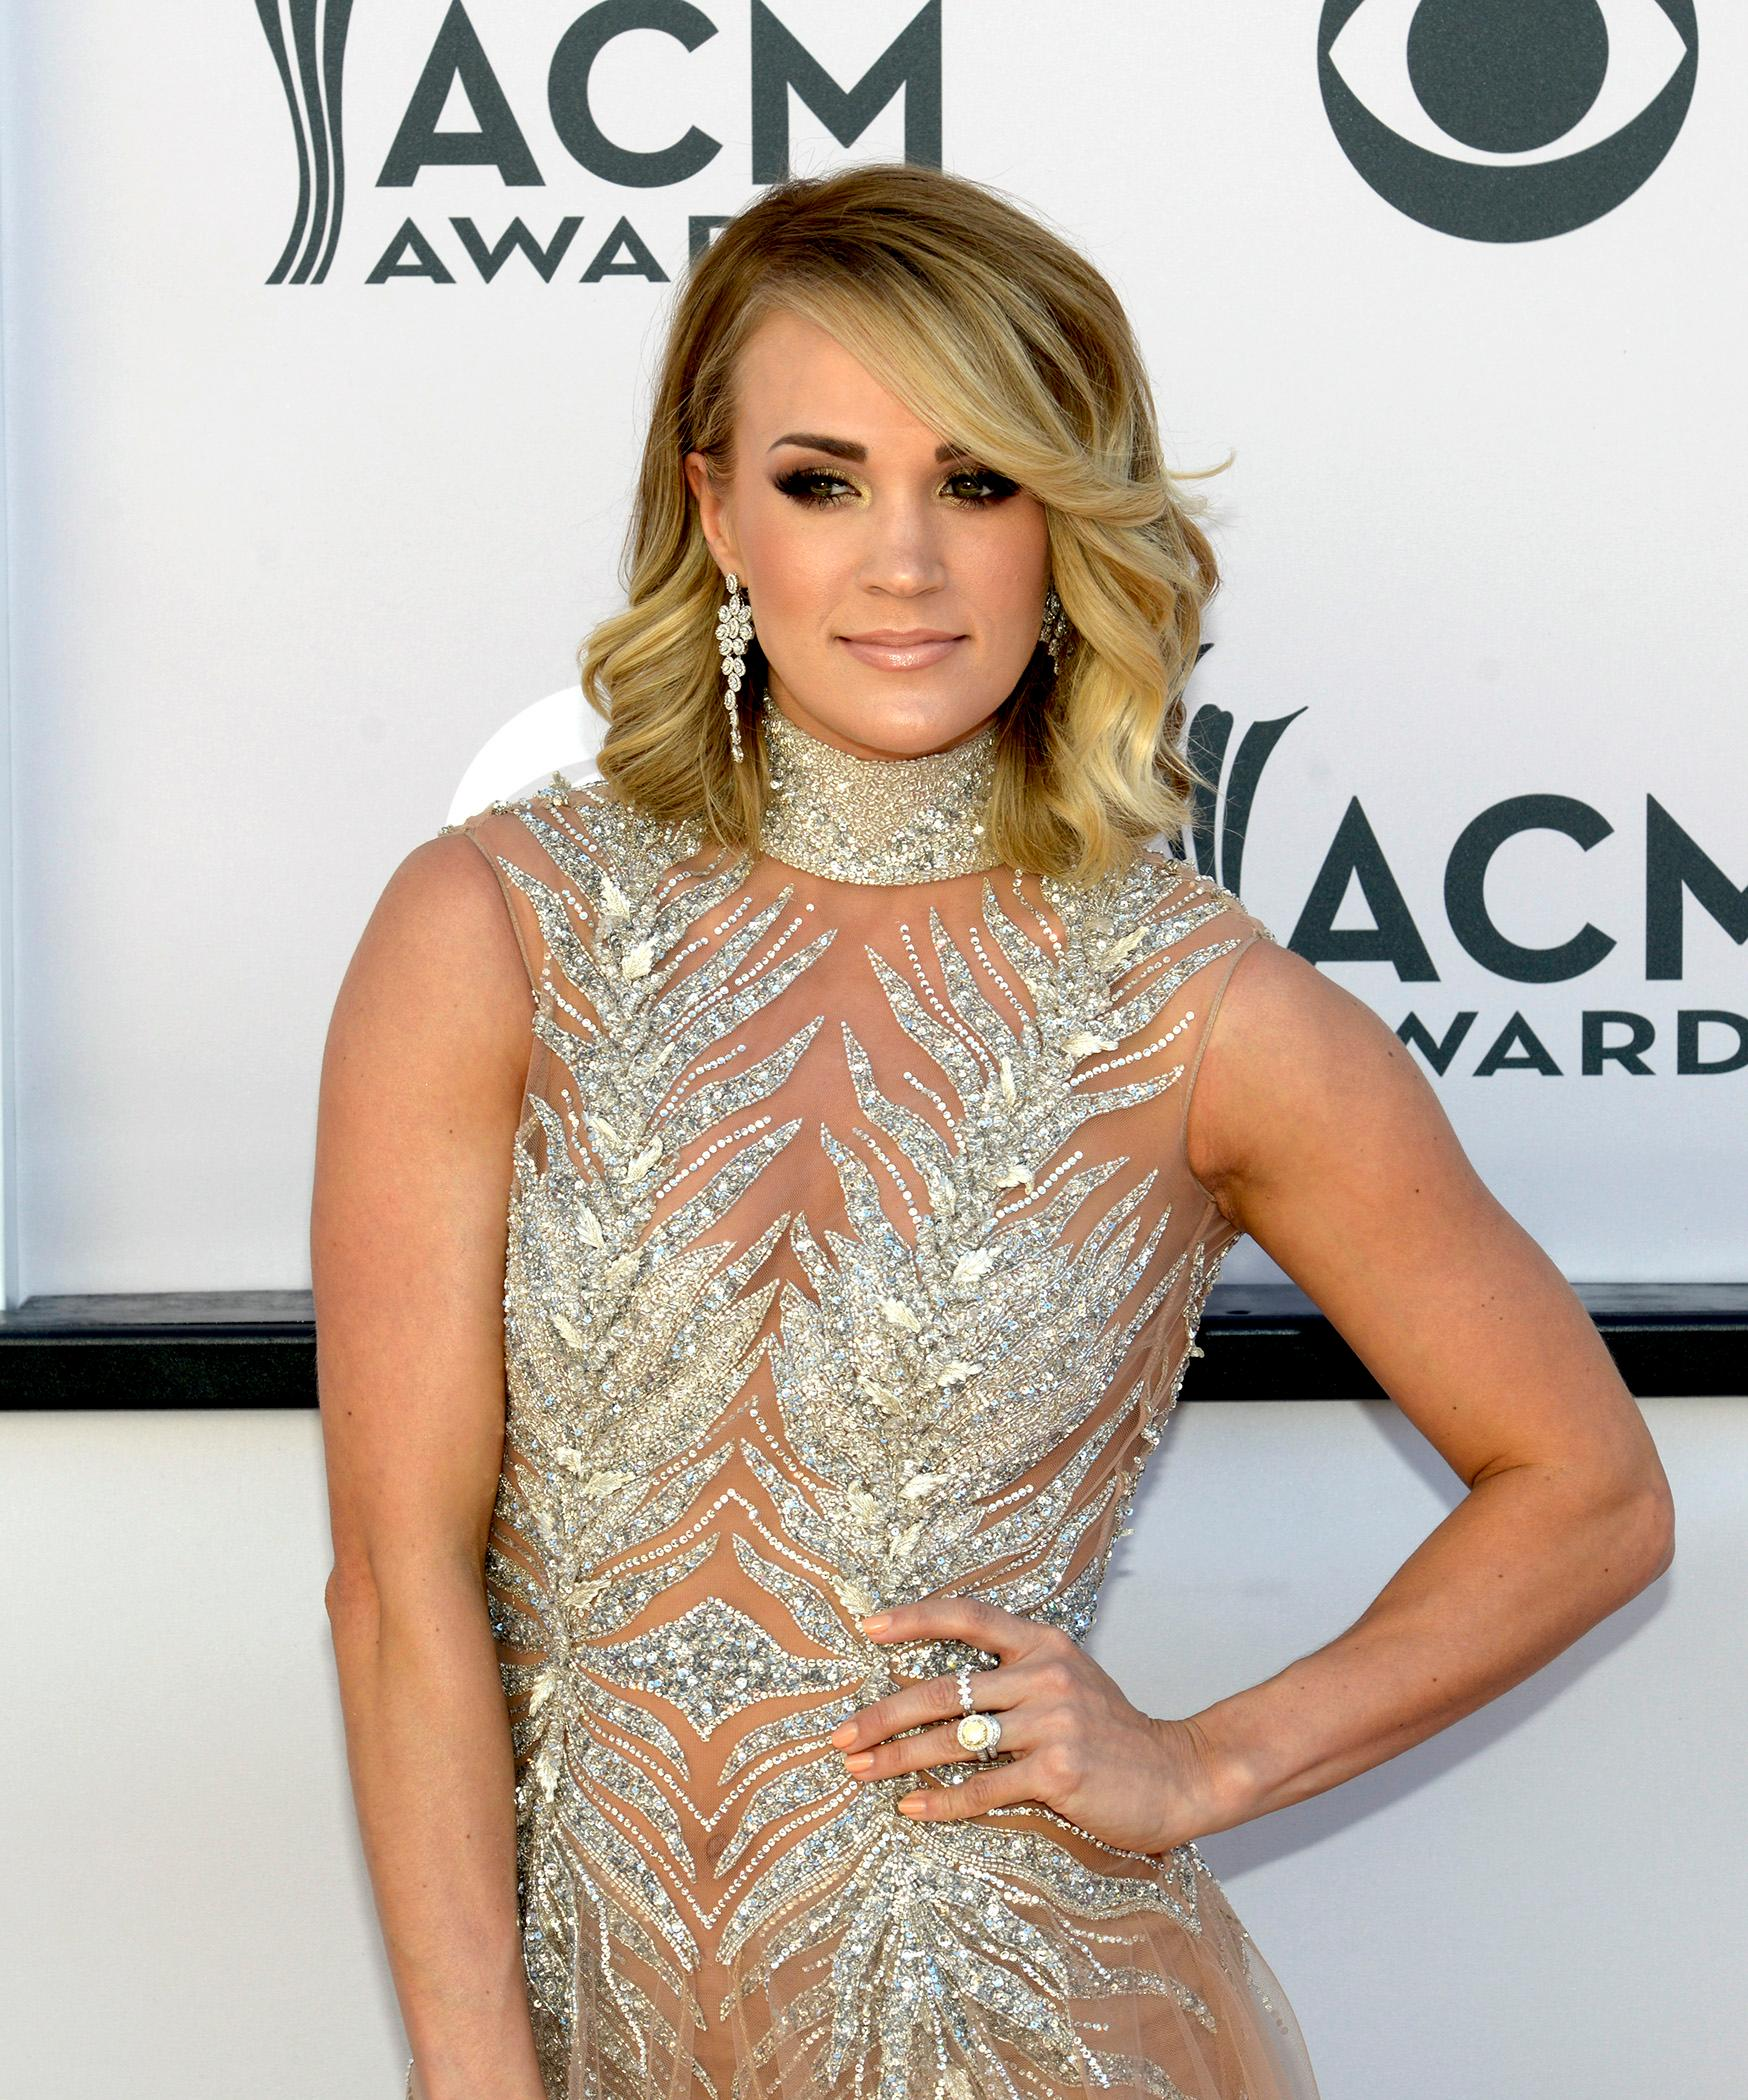 Carrie Underwood, nominee for Entertainer of the Year and Female Vocalist of the Year walks the Academy of Country Music Awards red carpet at T-Mobile Arena. Sunday, April 2, 2017. (Glenn Pinkerton/ Las Vegas News Bureau)